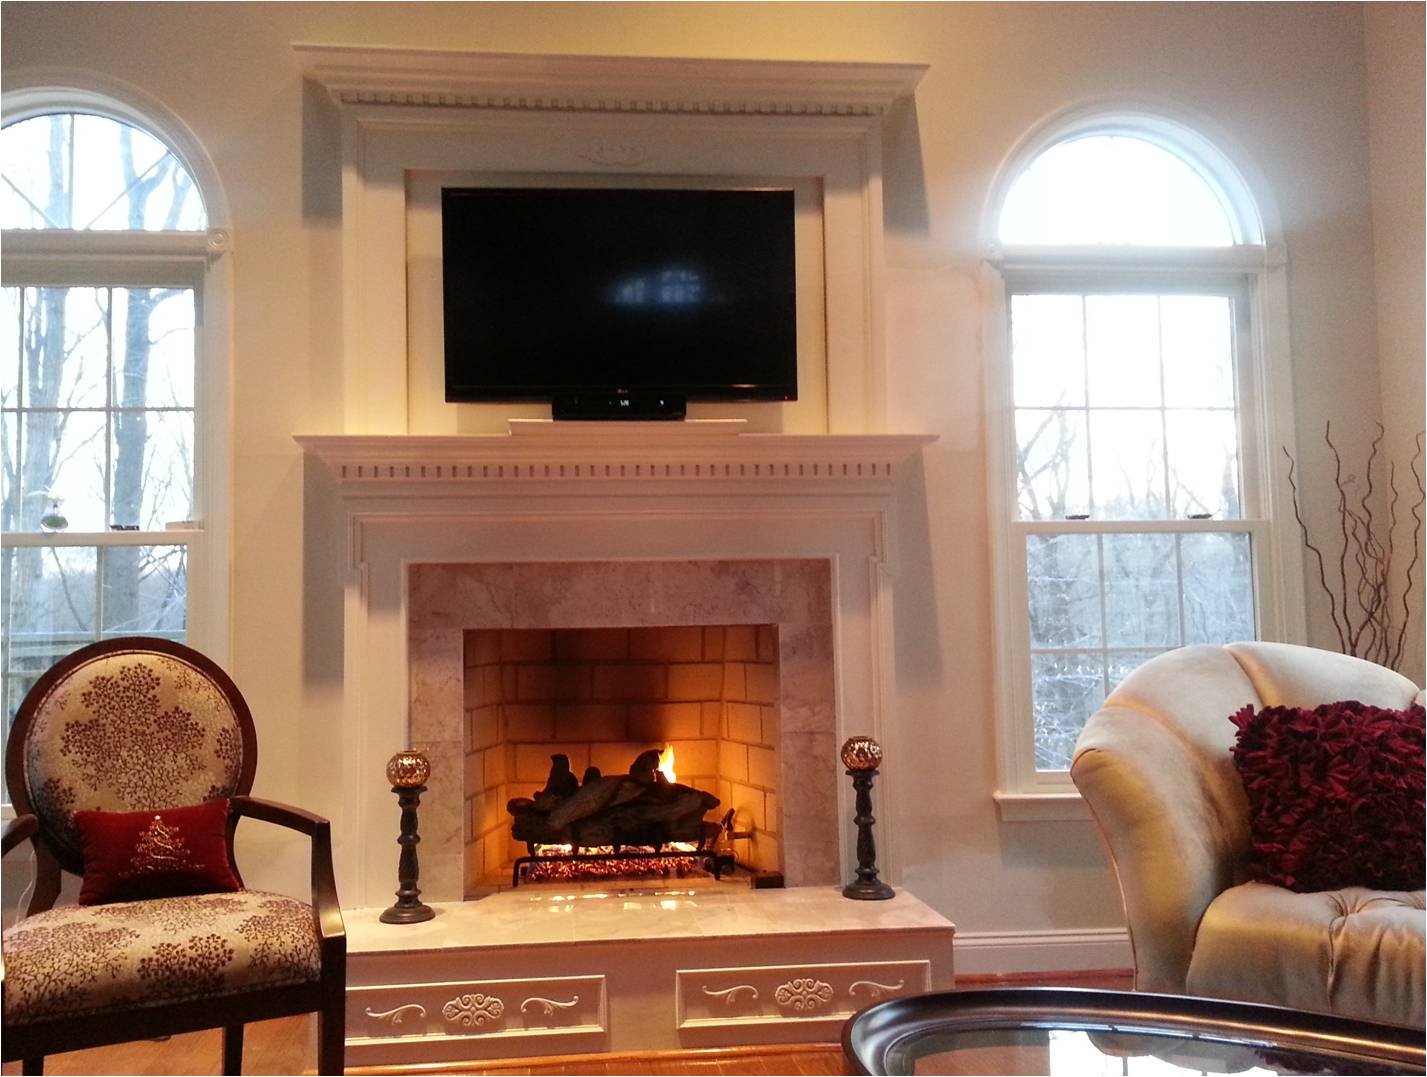 1000 Images About Brick Fireplaces On Pinterest Fireplace Remodel Brick Fireplaces And